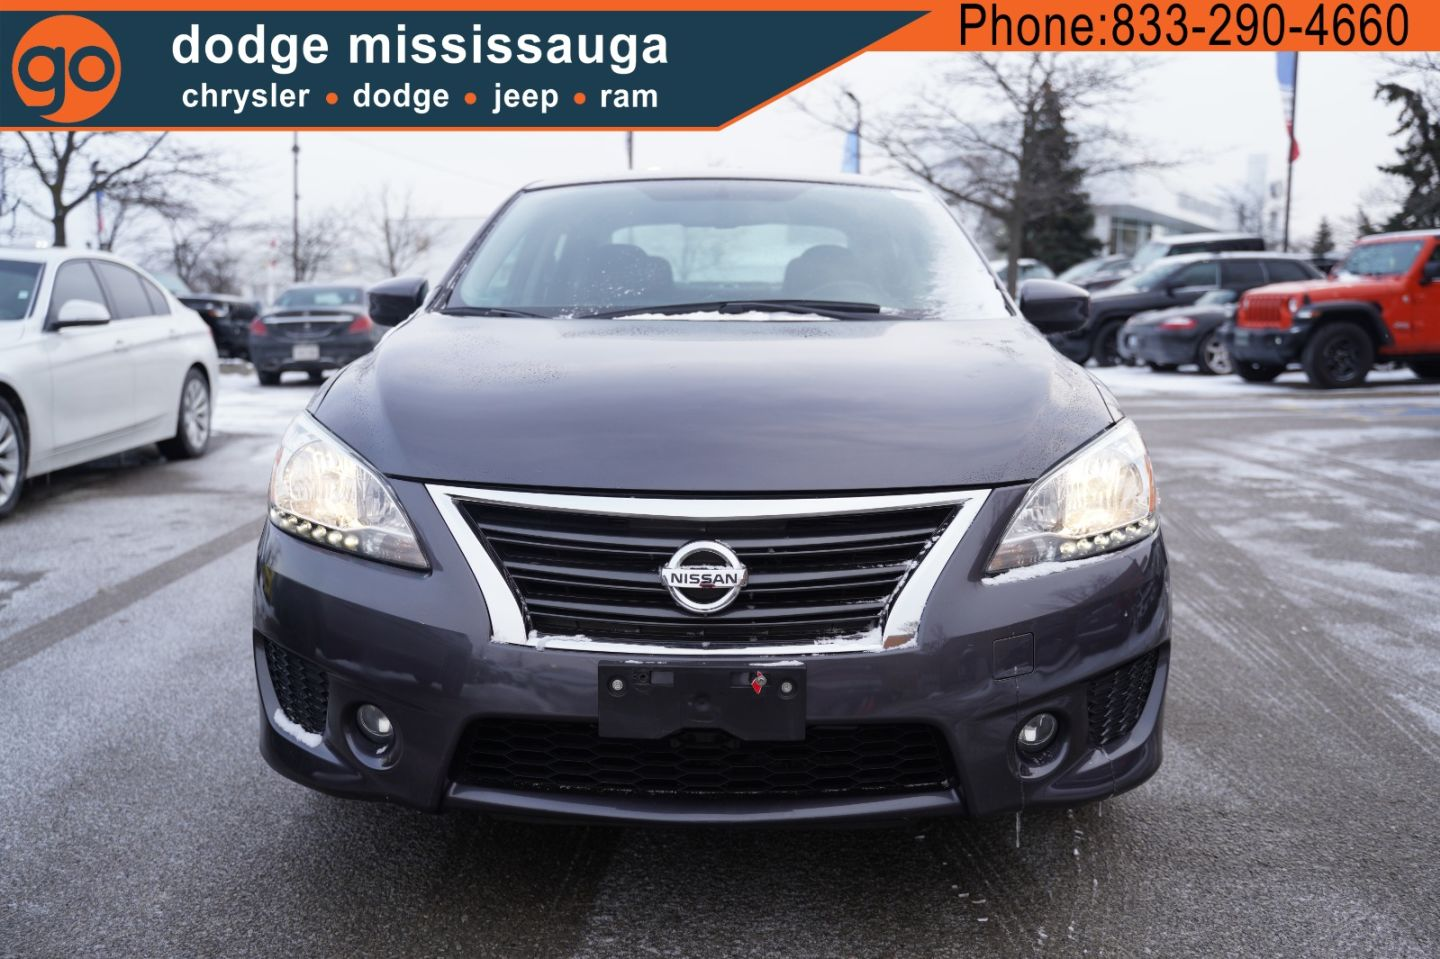 2015 Nissan Sentra SR for sale in Mississauga, Ontario